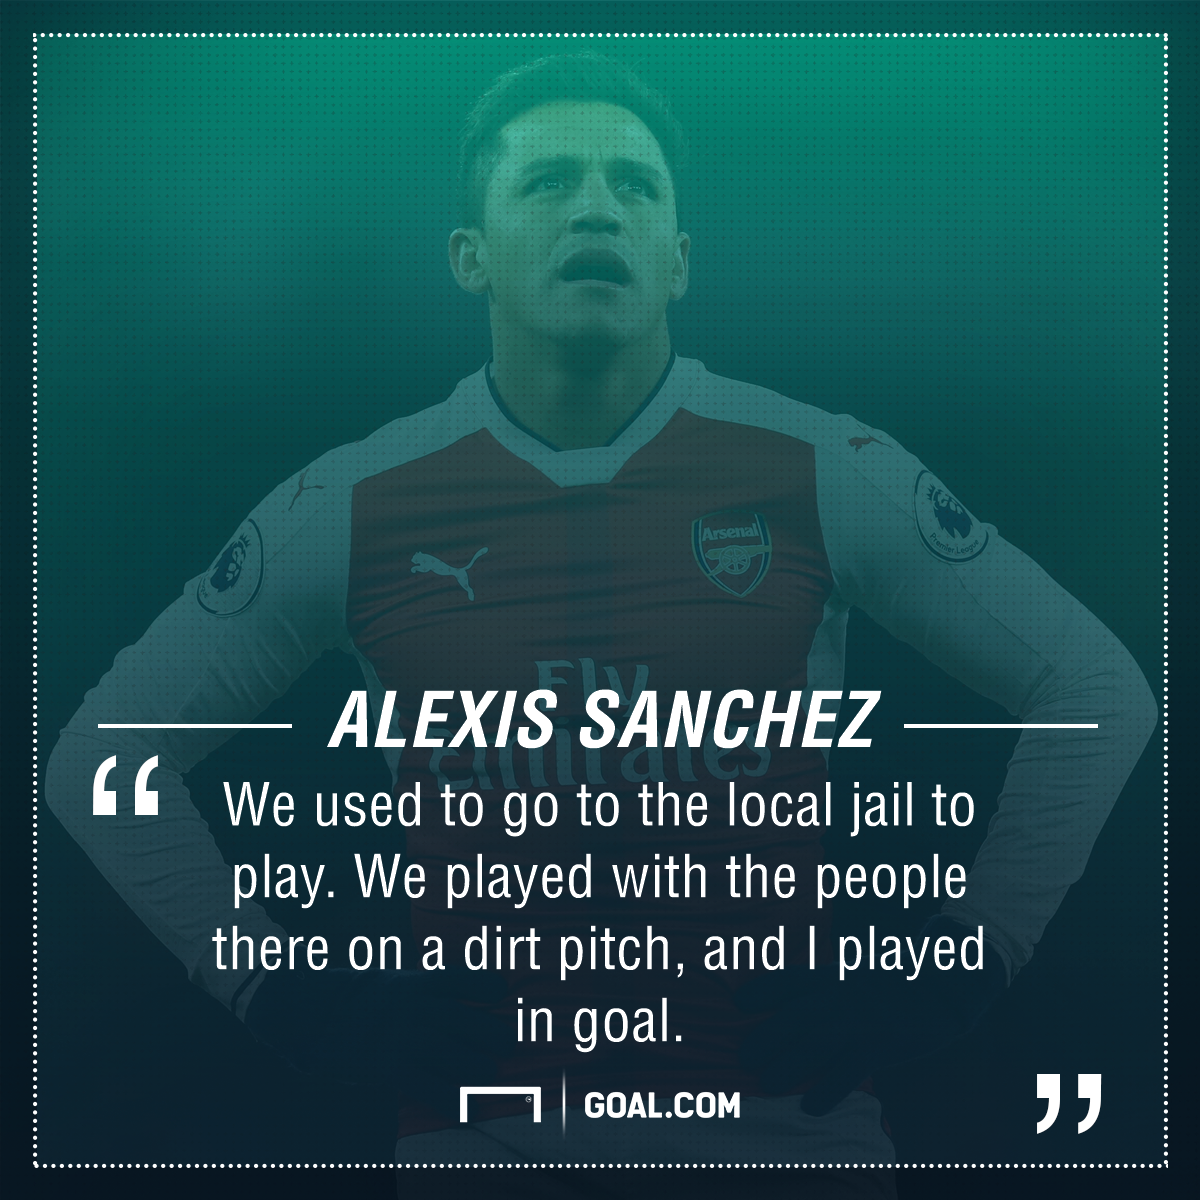 Alexis Sanchez jail